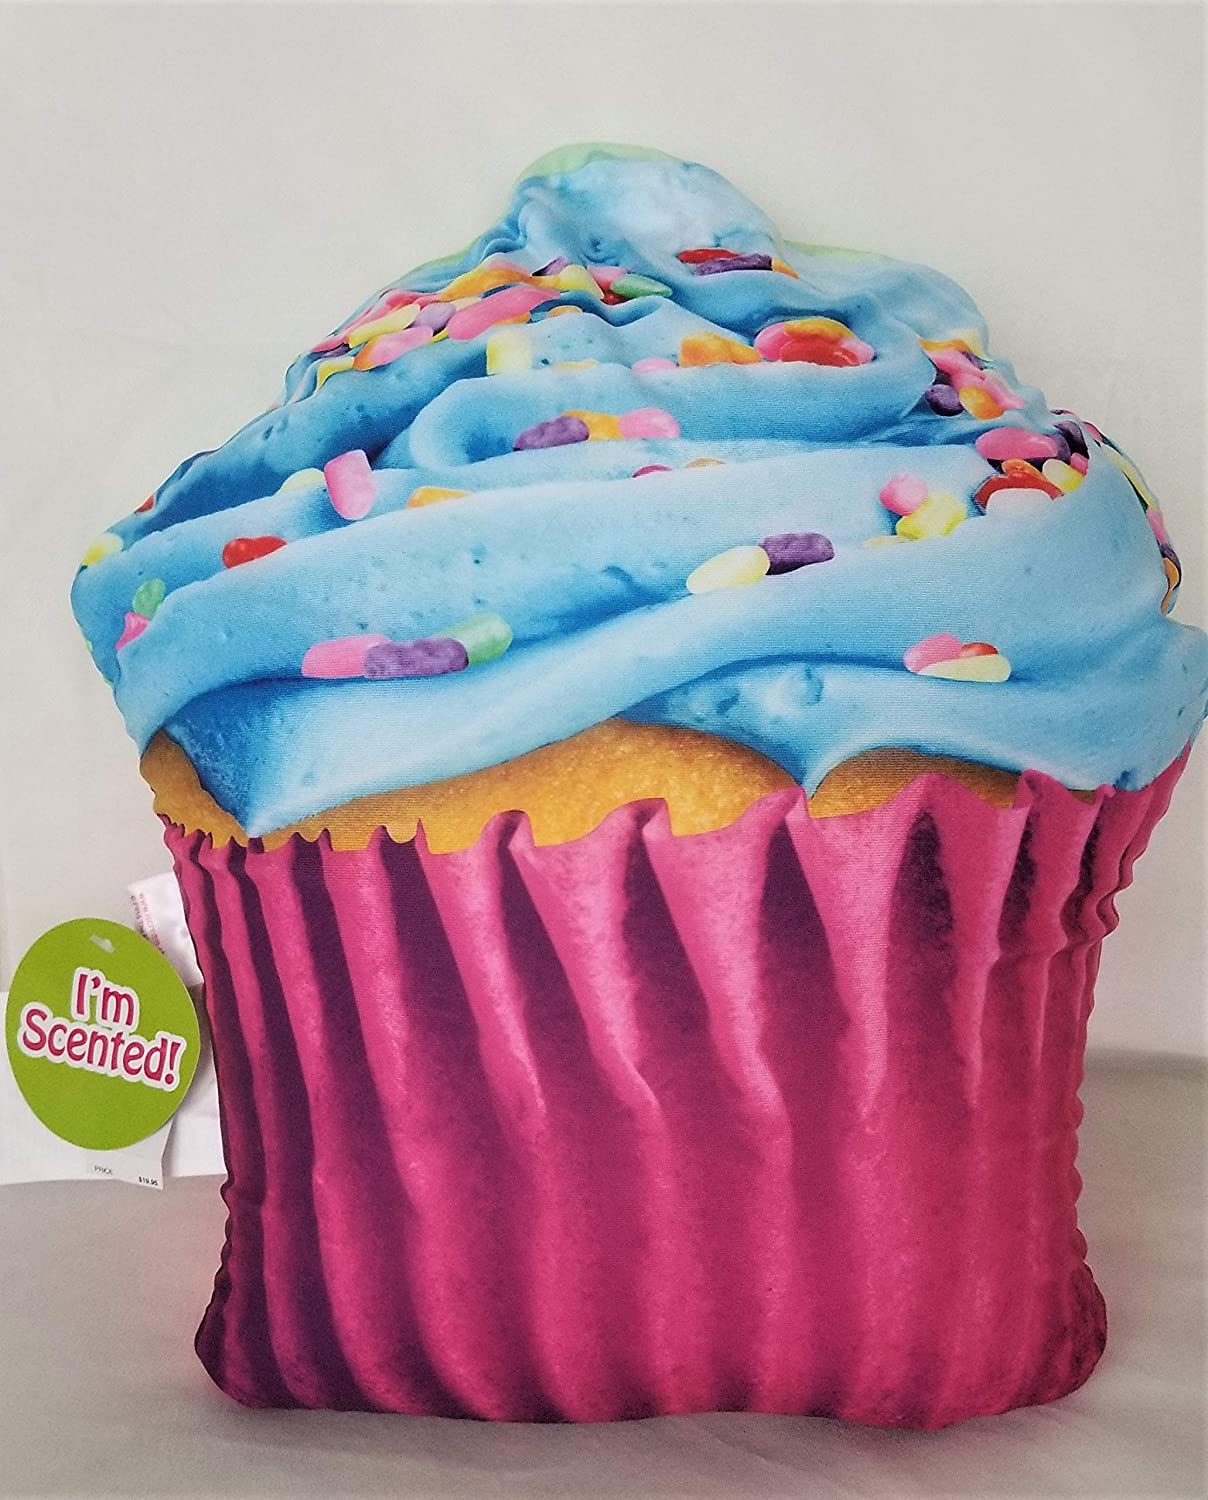 Justice Cupcake Scented Plush Pillow Microbead Accent Pillow Cupcake Design Microbead Fill 17